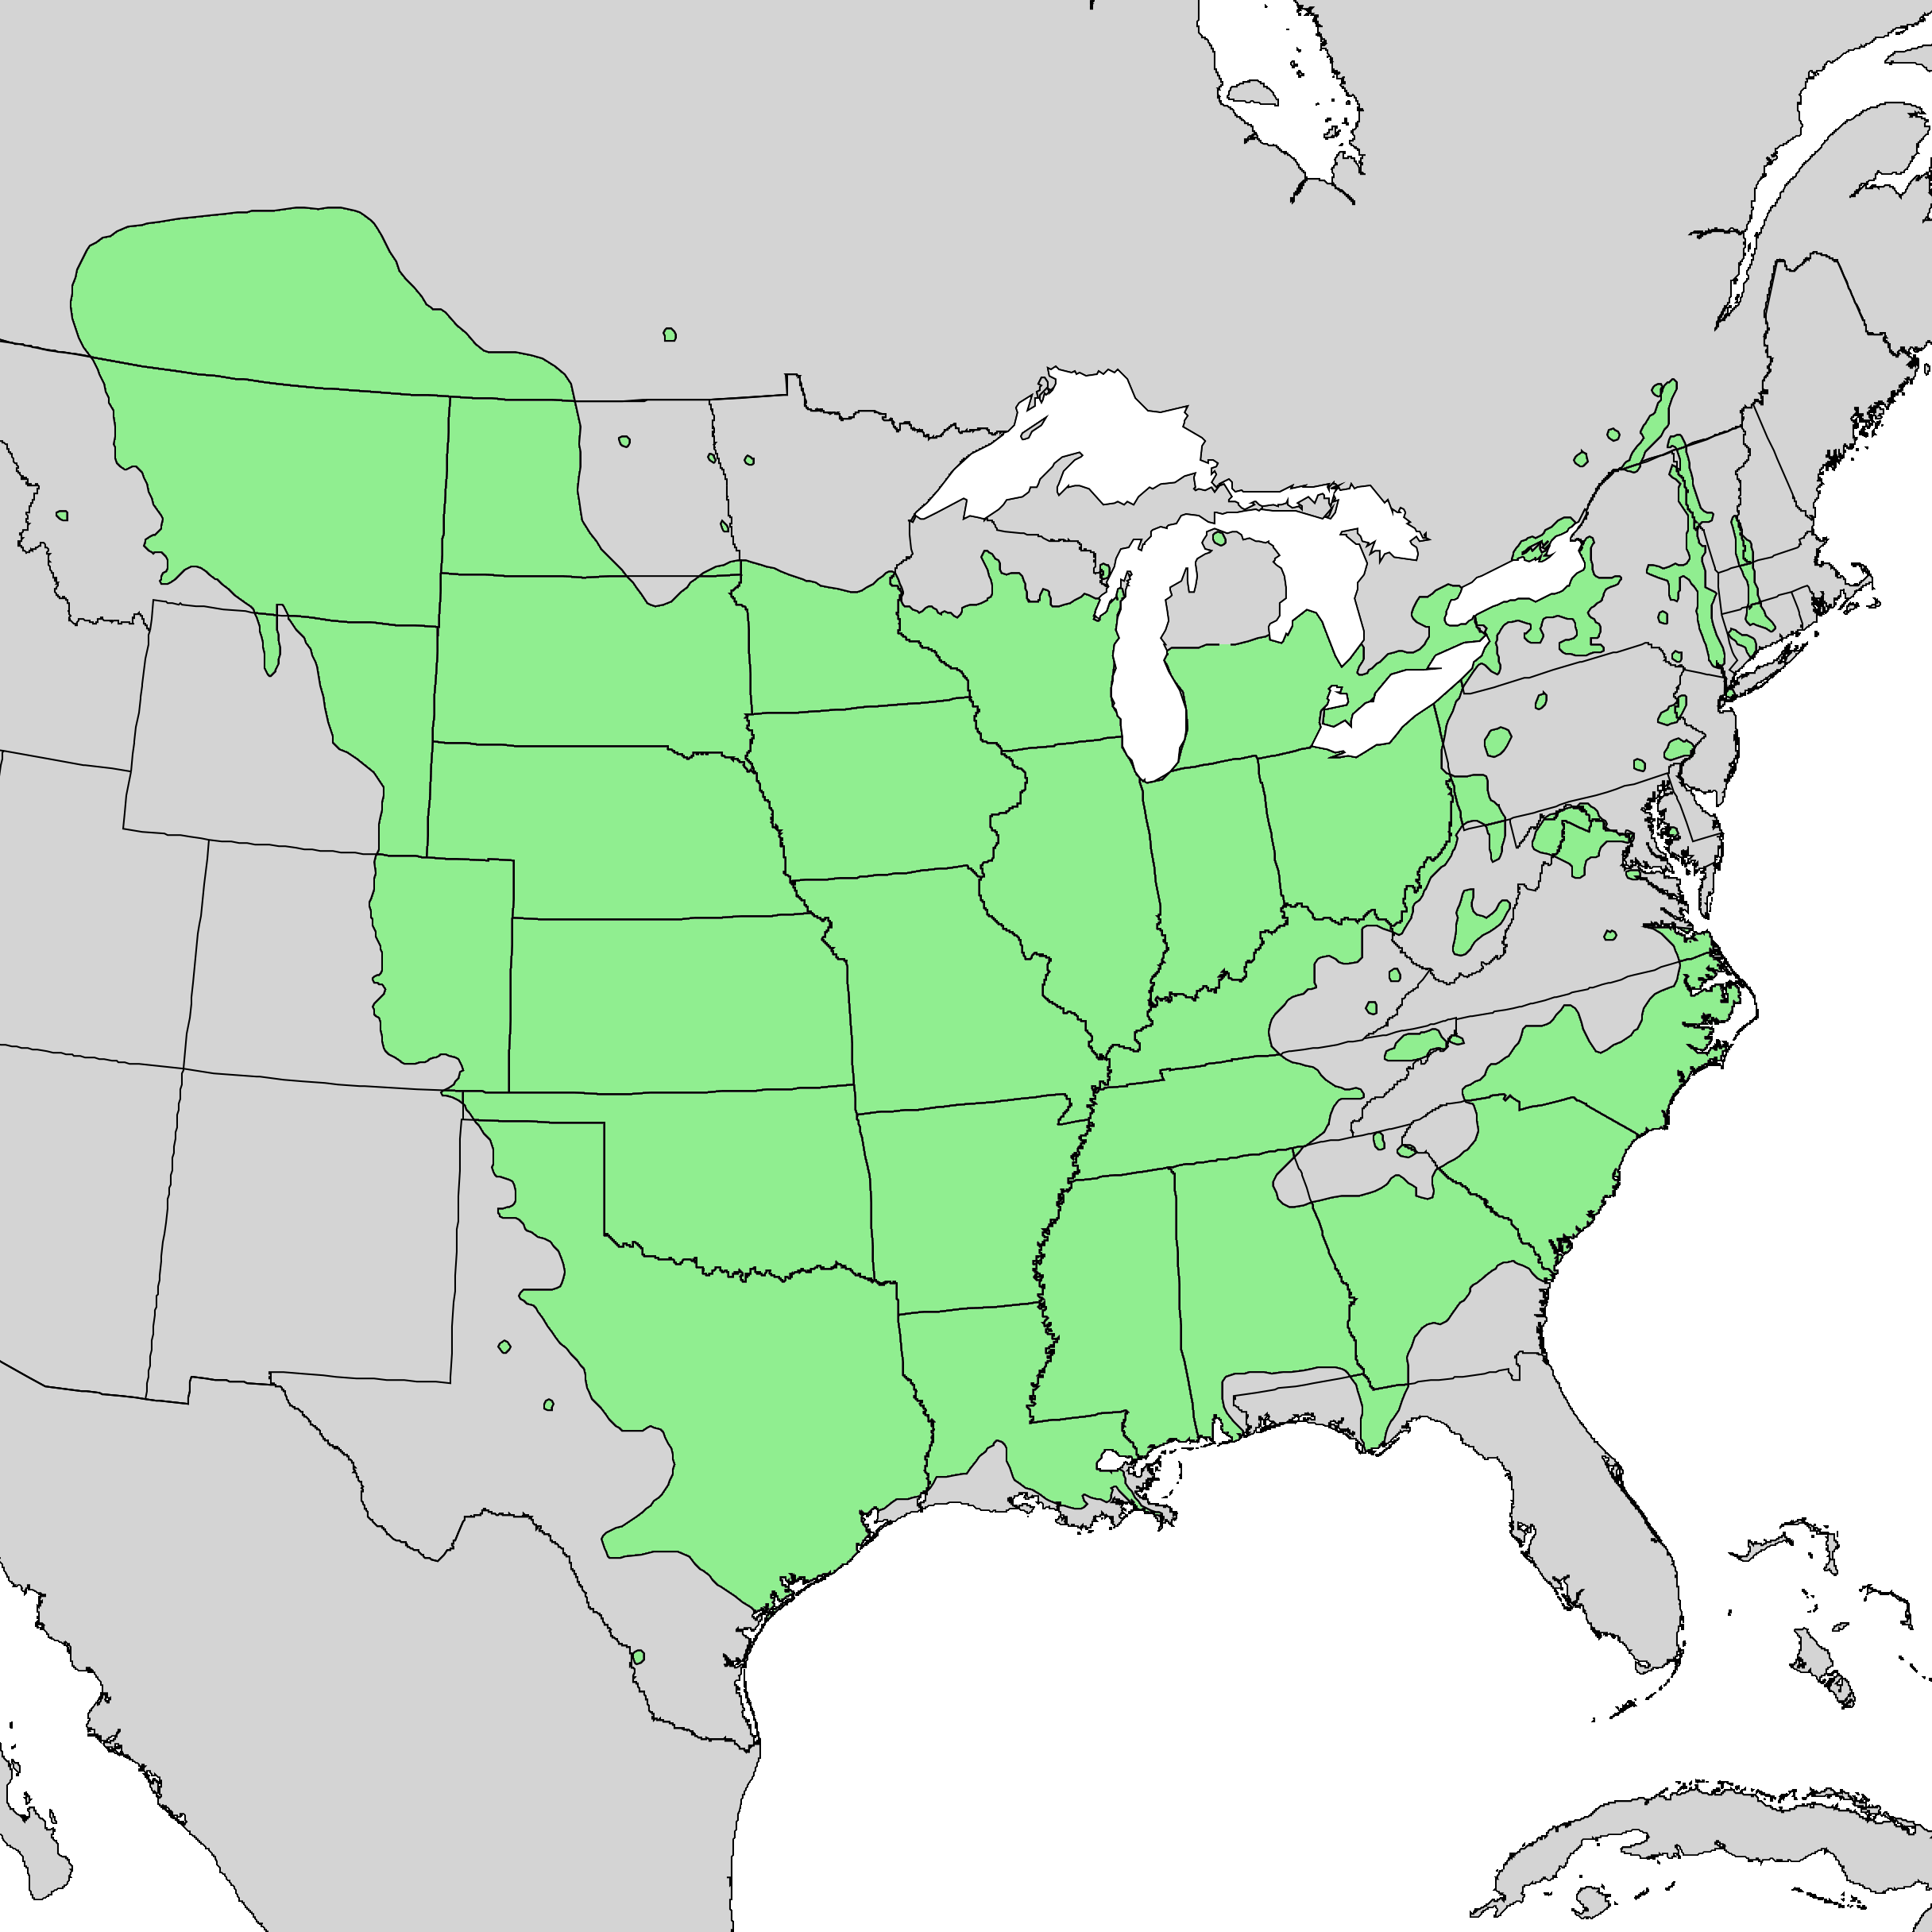 File:Populus deltoides range map 2.png - Wikimedia Commons